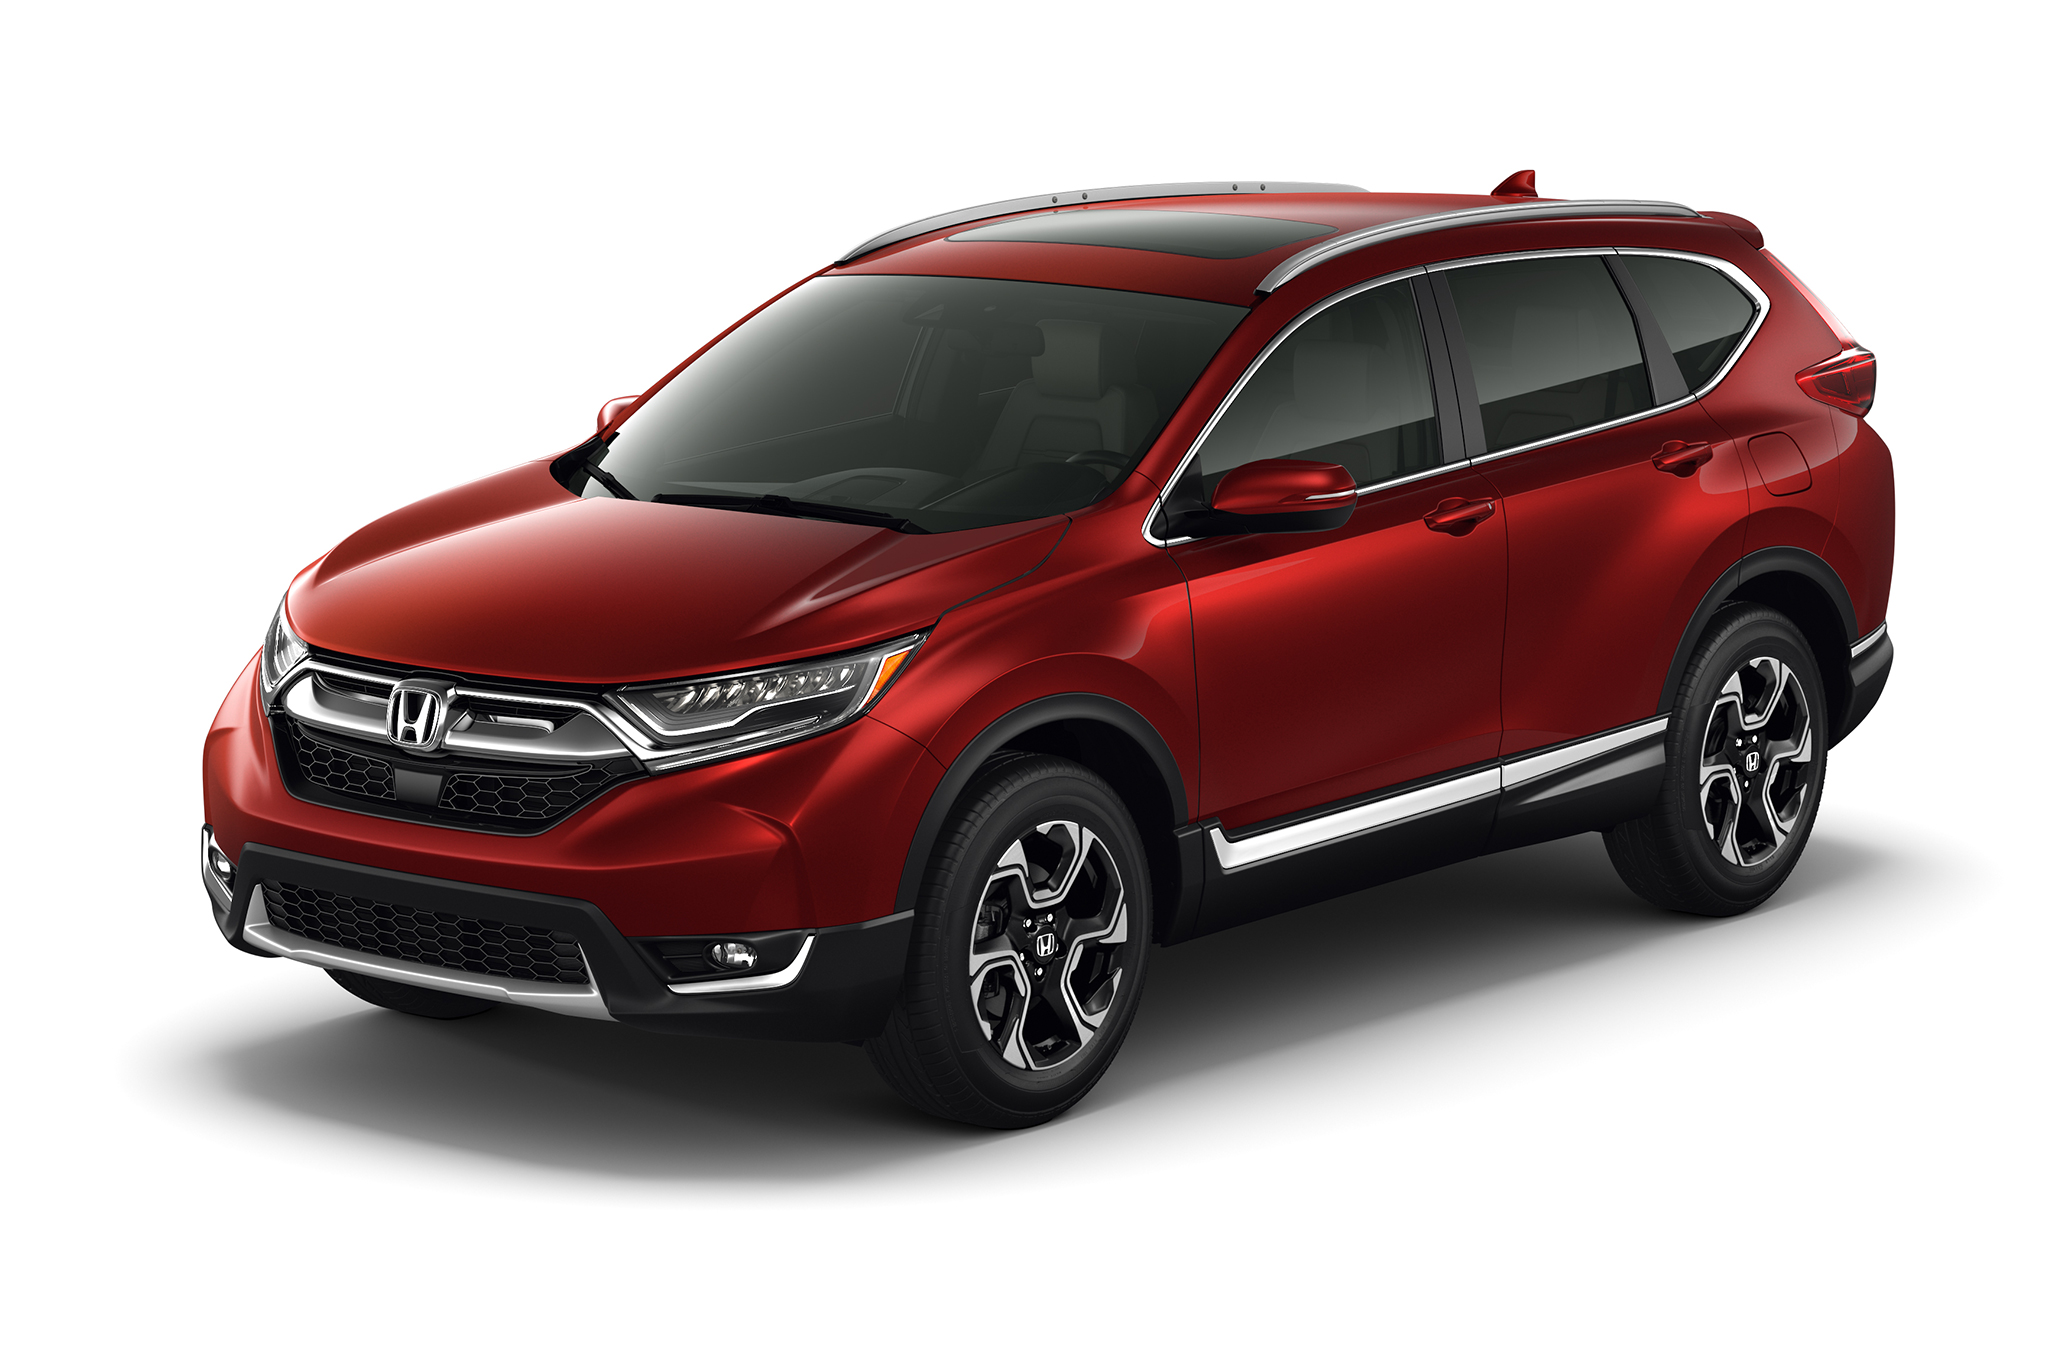 2017-honda-cr-v-front-three-quarter-studio